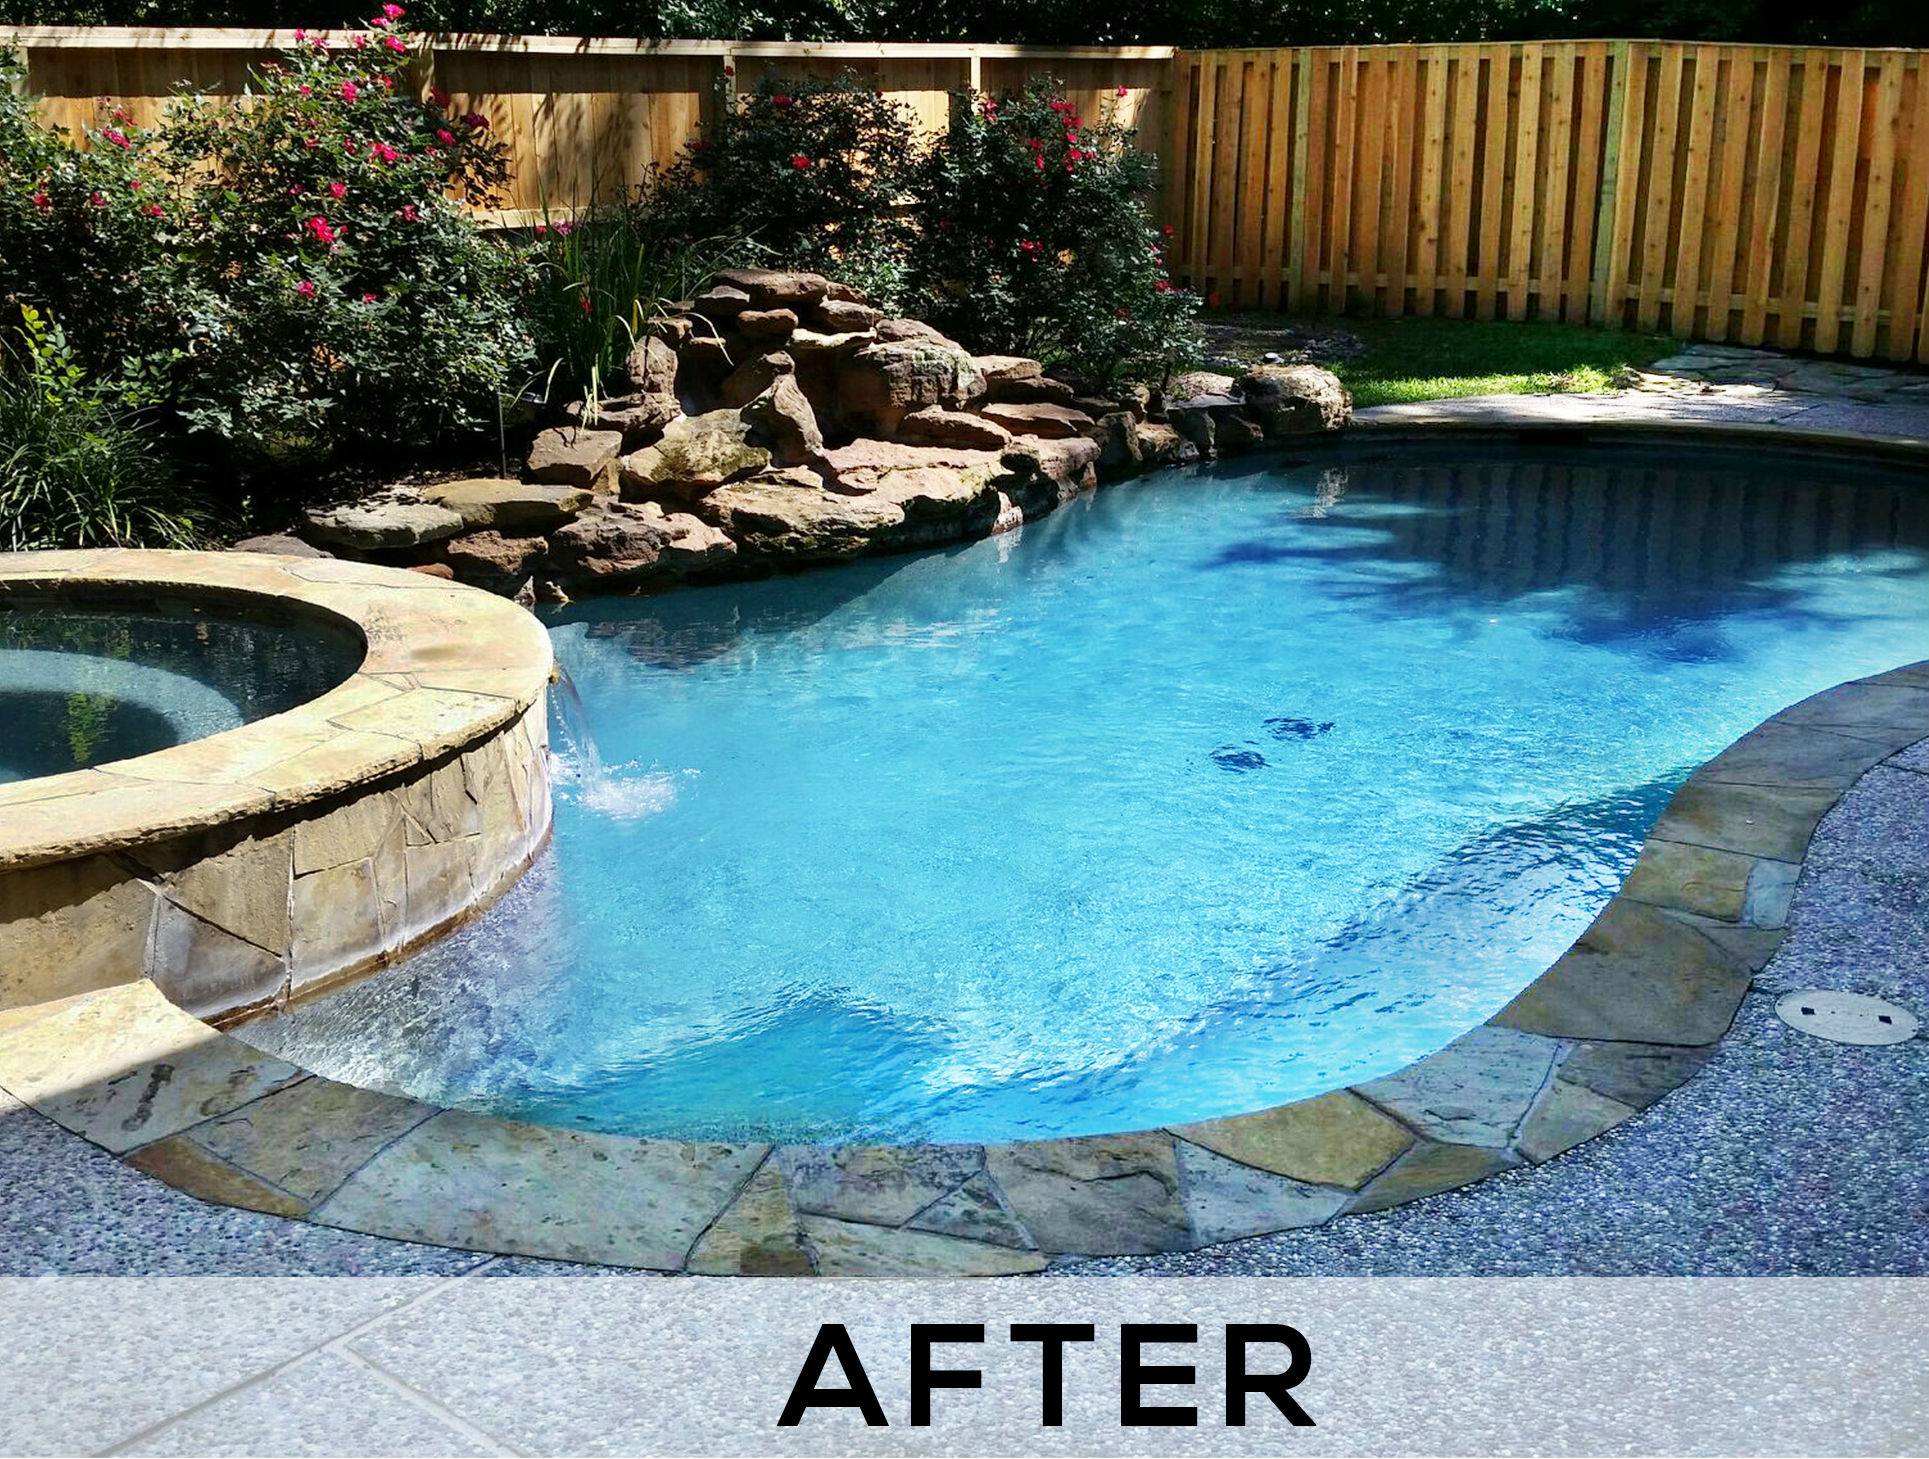 Pool remodeling service in your area